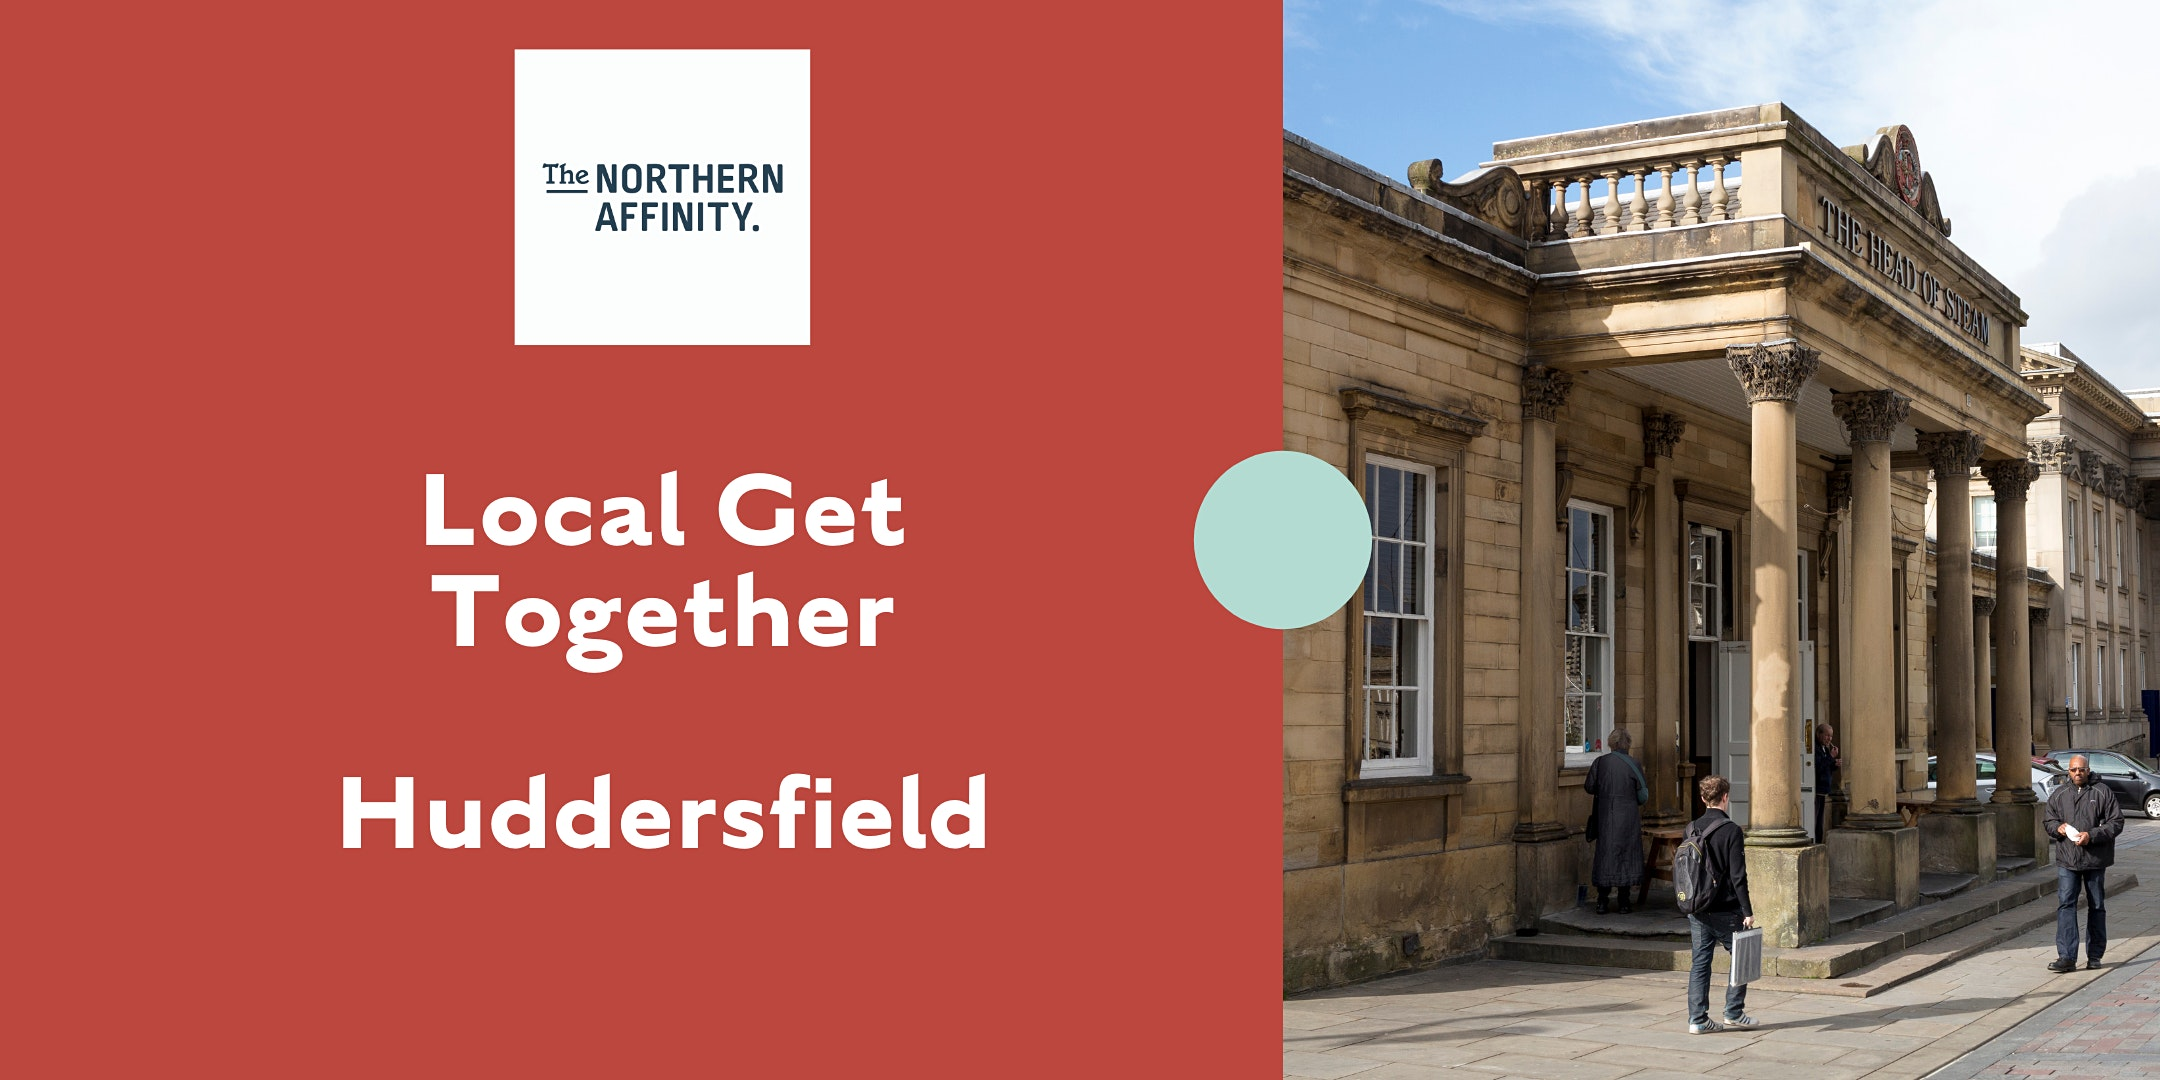 The Northern Affinity Local Get Together – Huddersfield